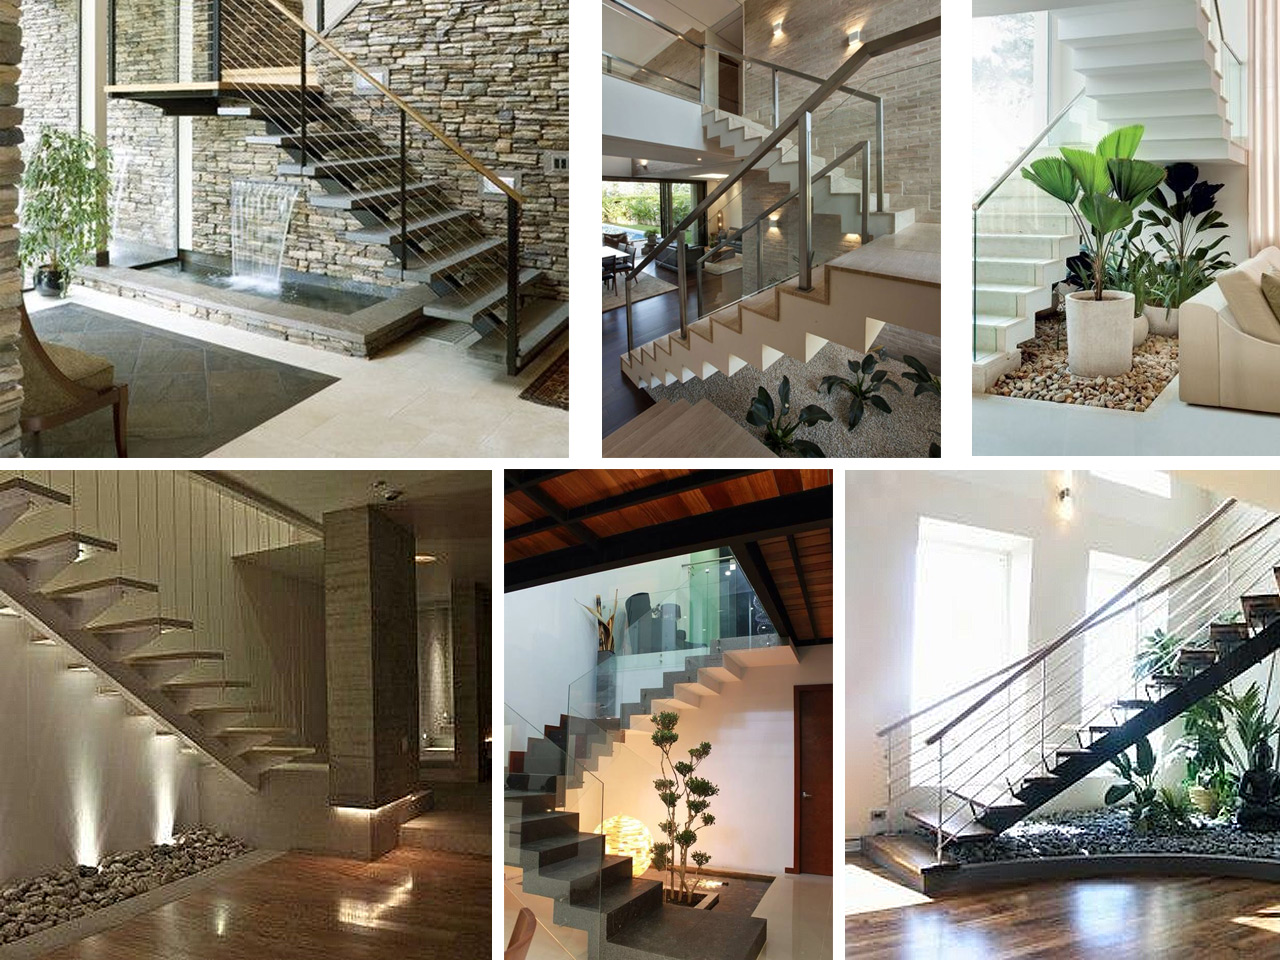 Decoracion Para Escaleras Interiores Decoracin Para Escaleras  ~ Como Decorar La Pared De Una Escalera